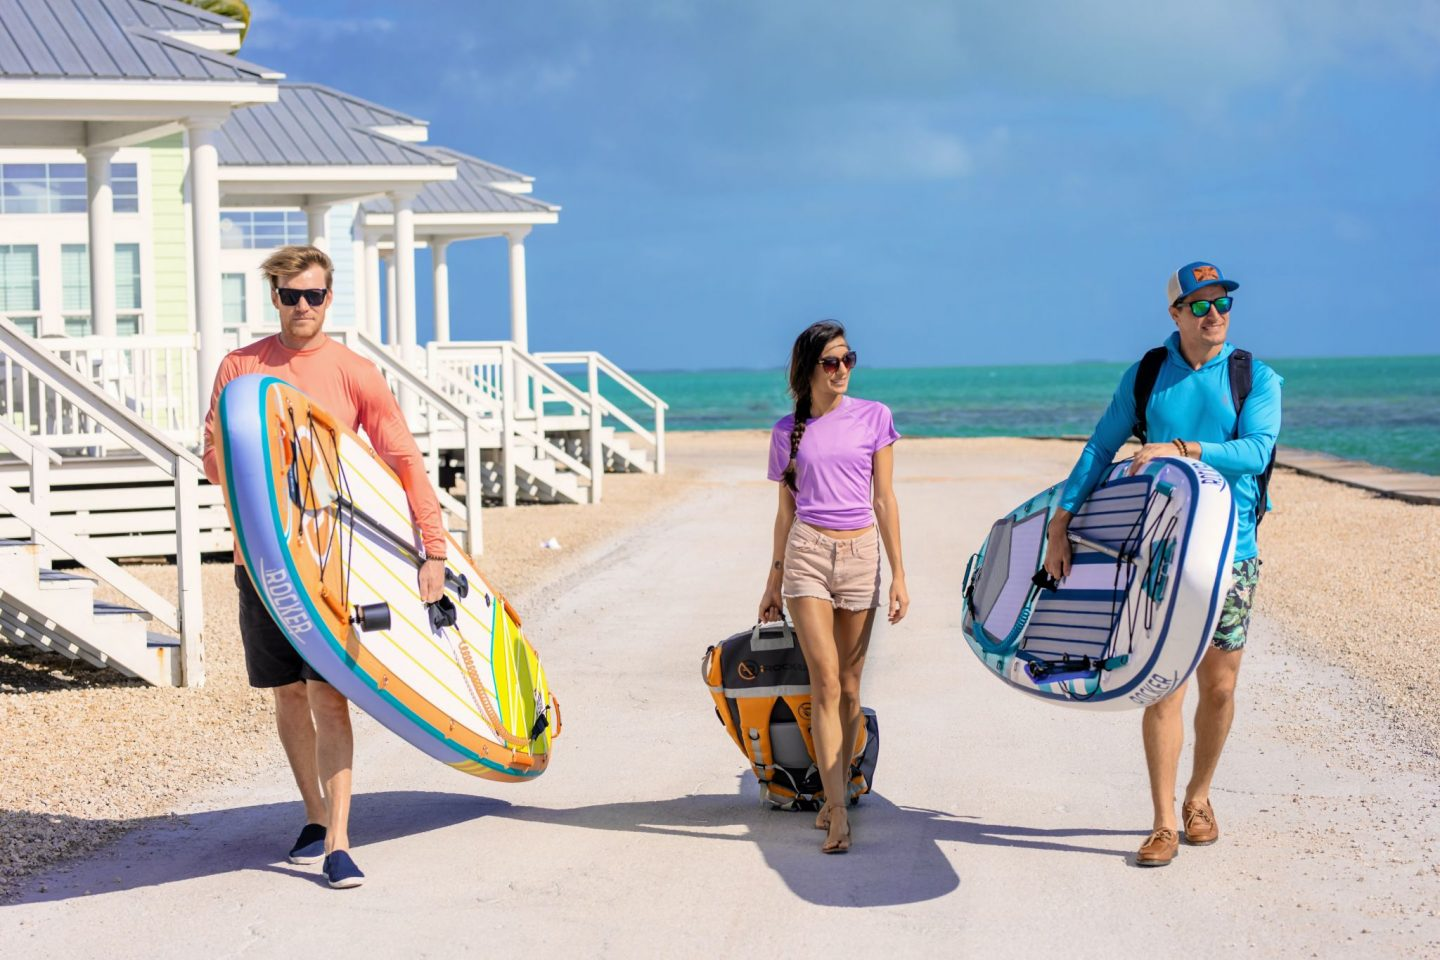 QUALITIES TO LOOK FOR WHEN BUYING A PADDLEBOARD